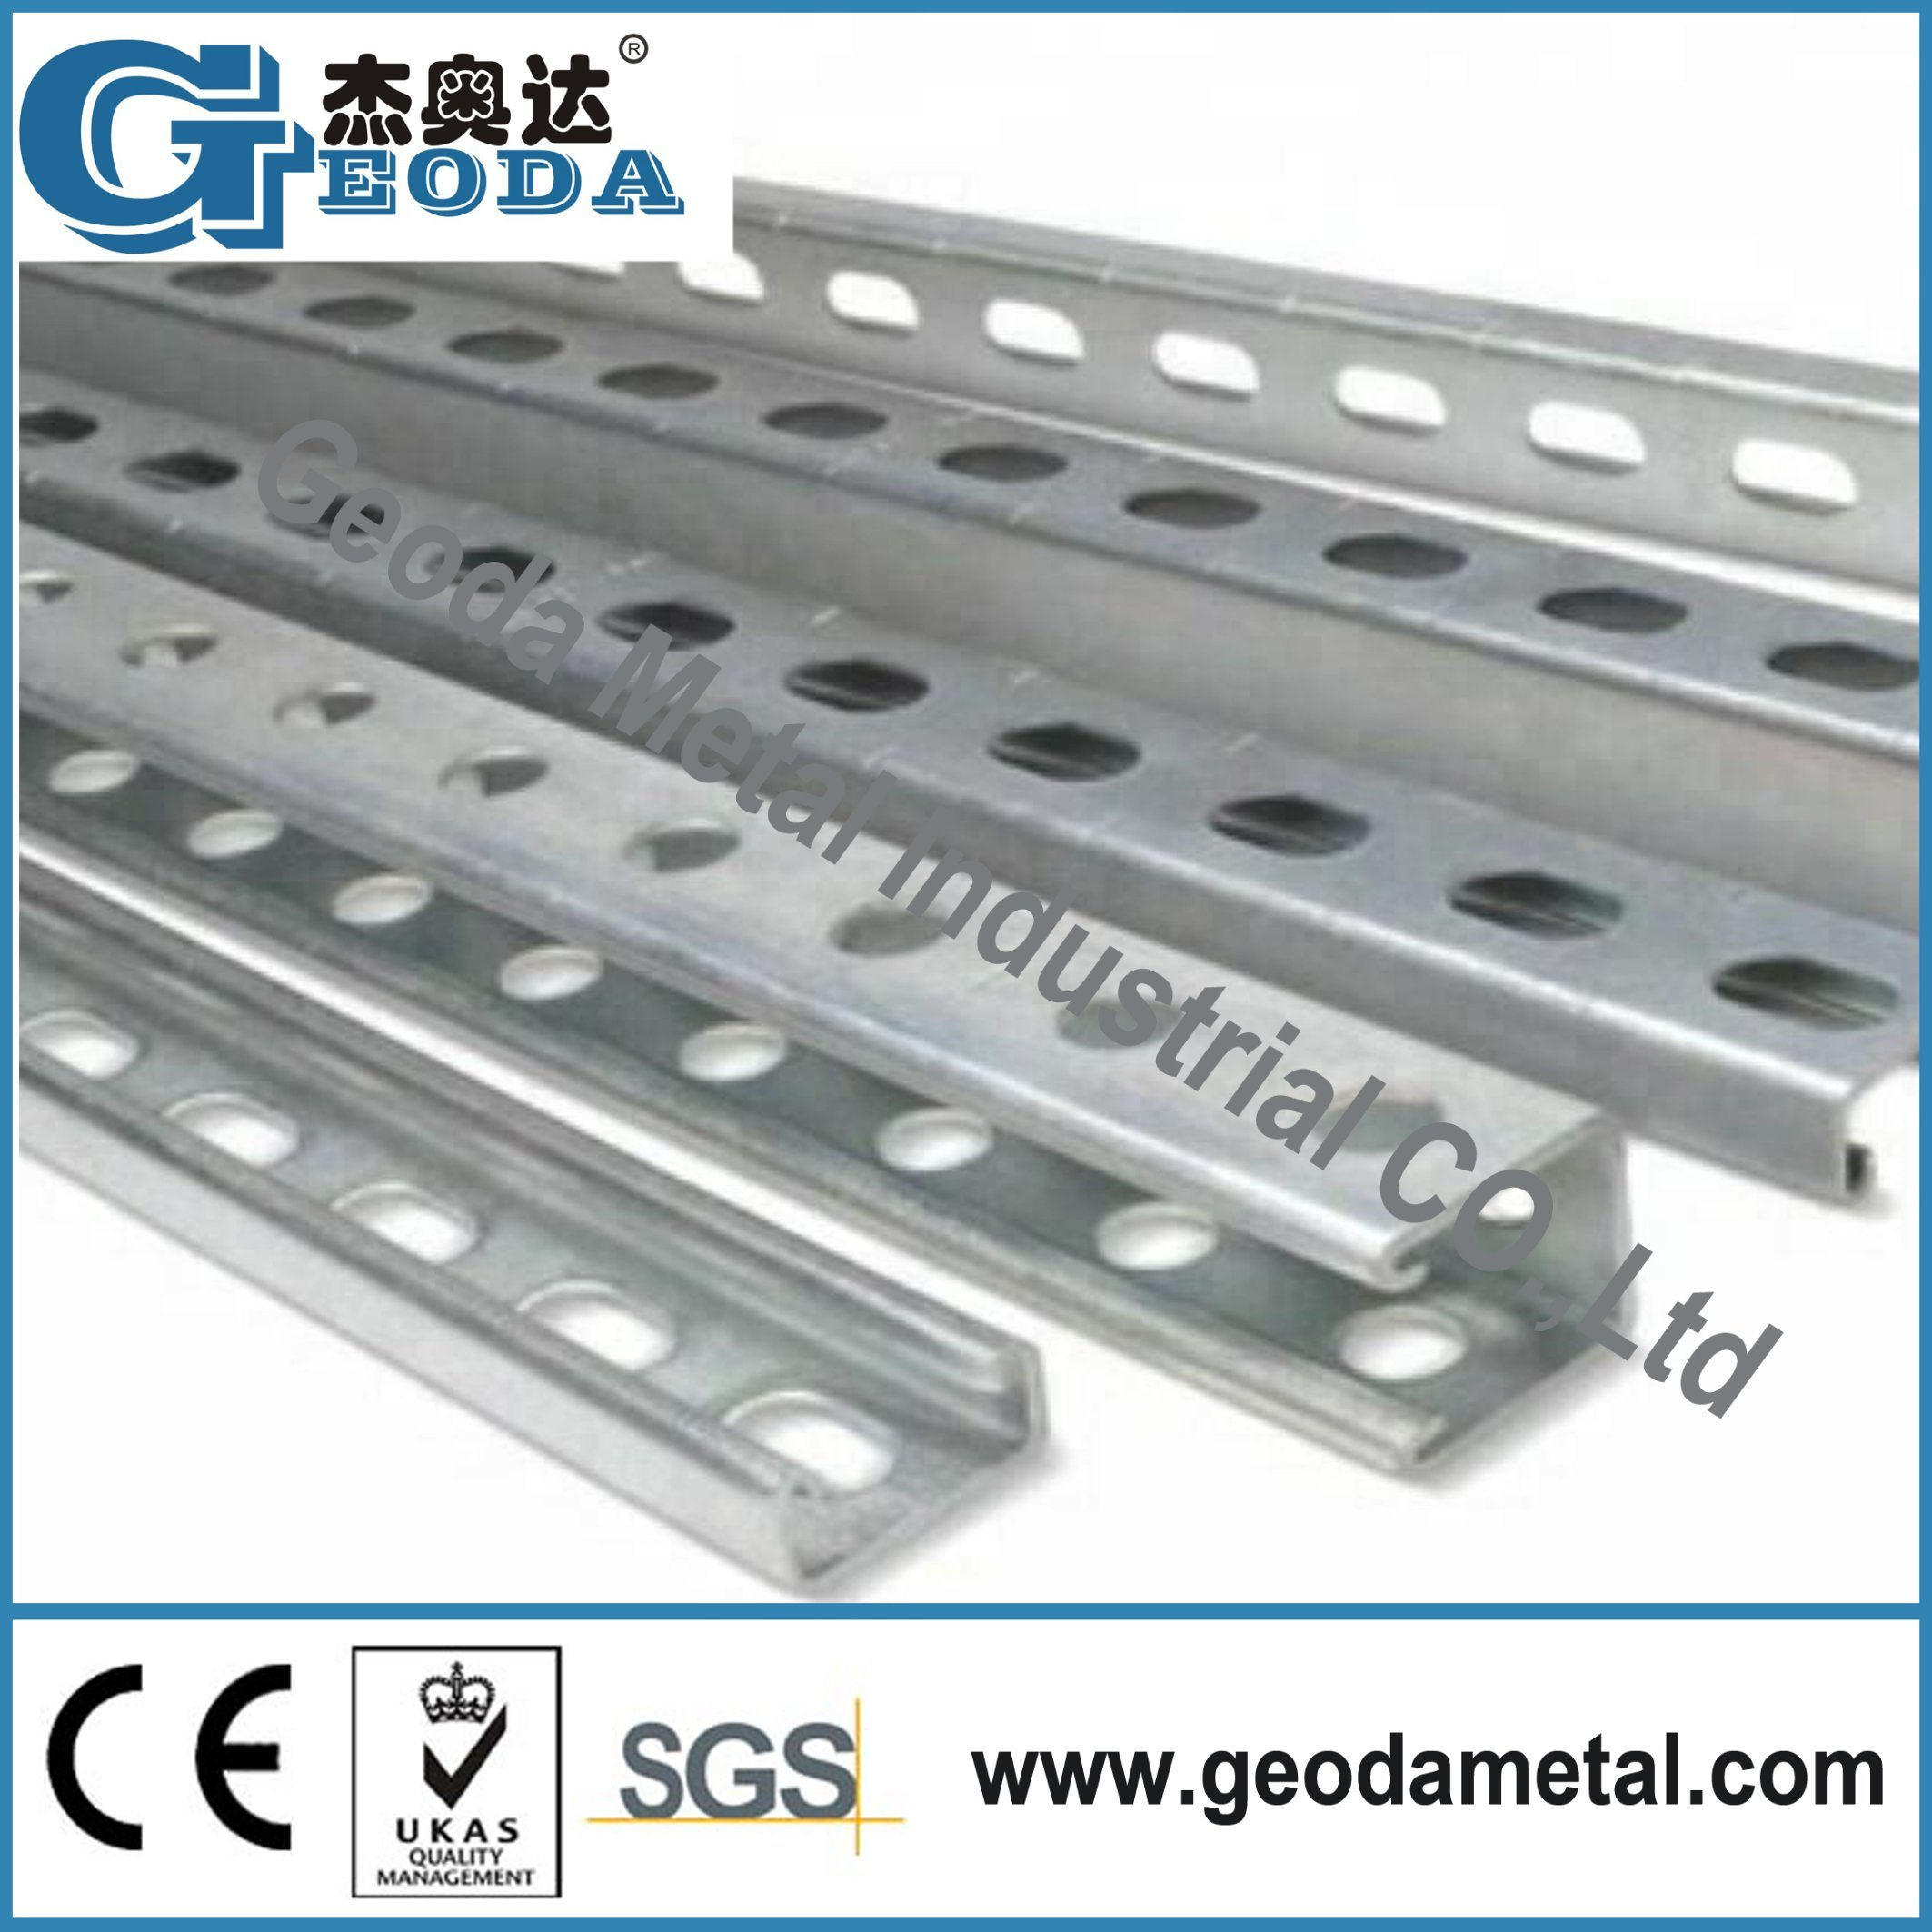 Made in China Slotted Unistrut Channel Steel C Channel Solar